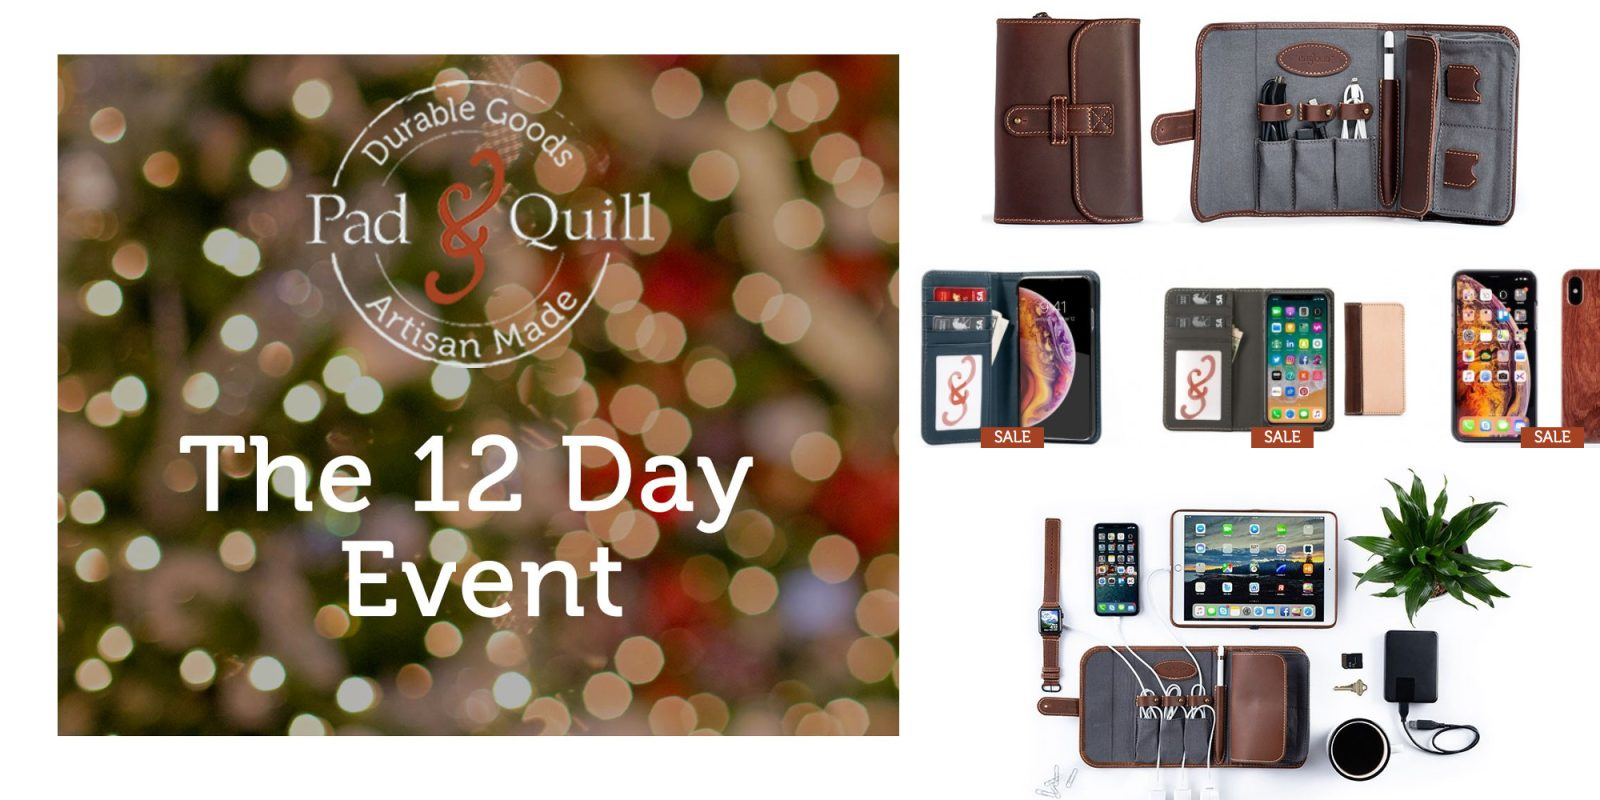 Pad & Quill launches 12-day sales event at up to 70% off with deals from $15